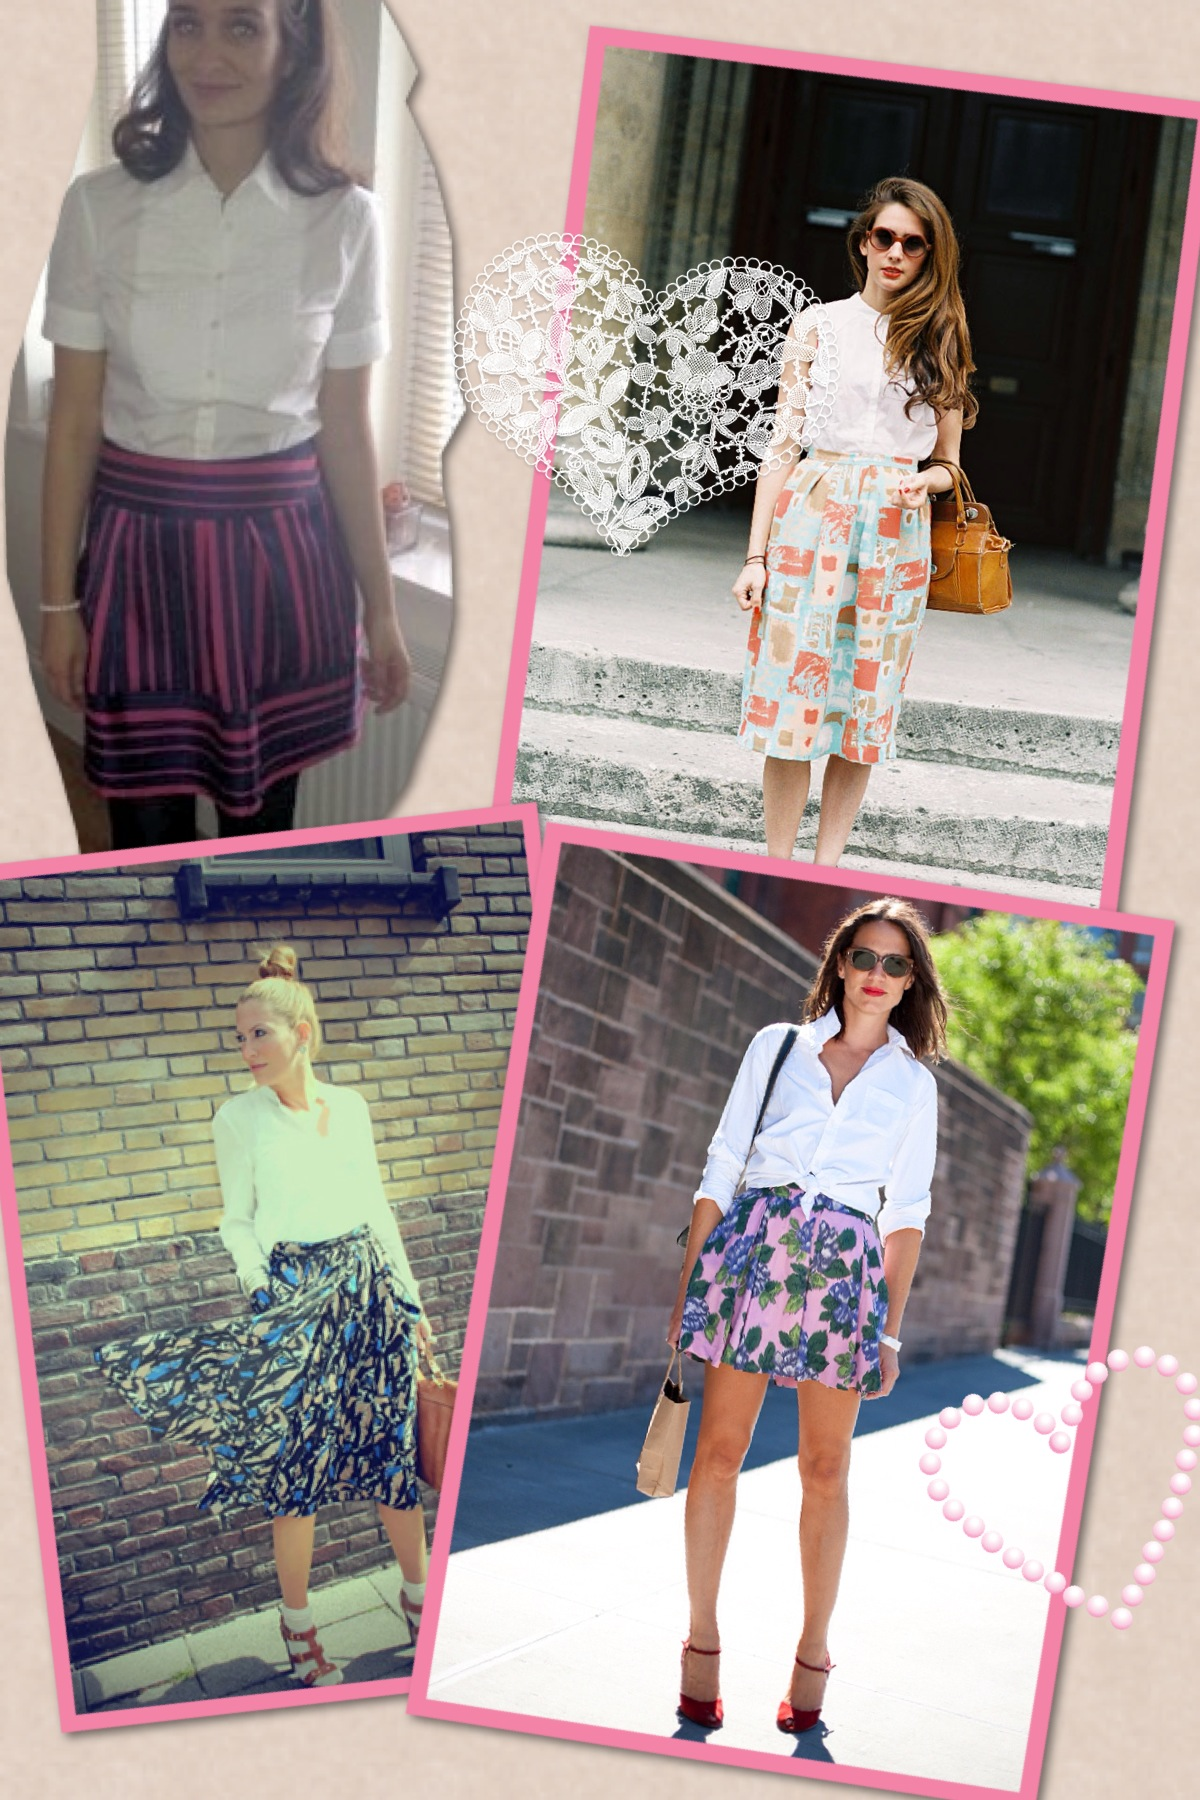 Different ways of wearing white shirts and printed skirts